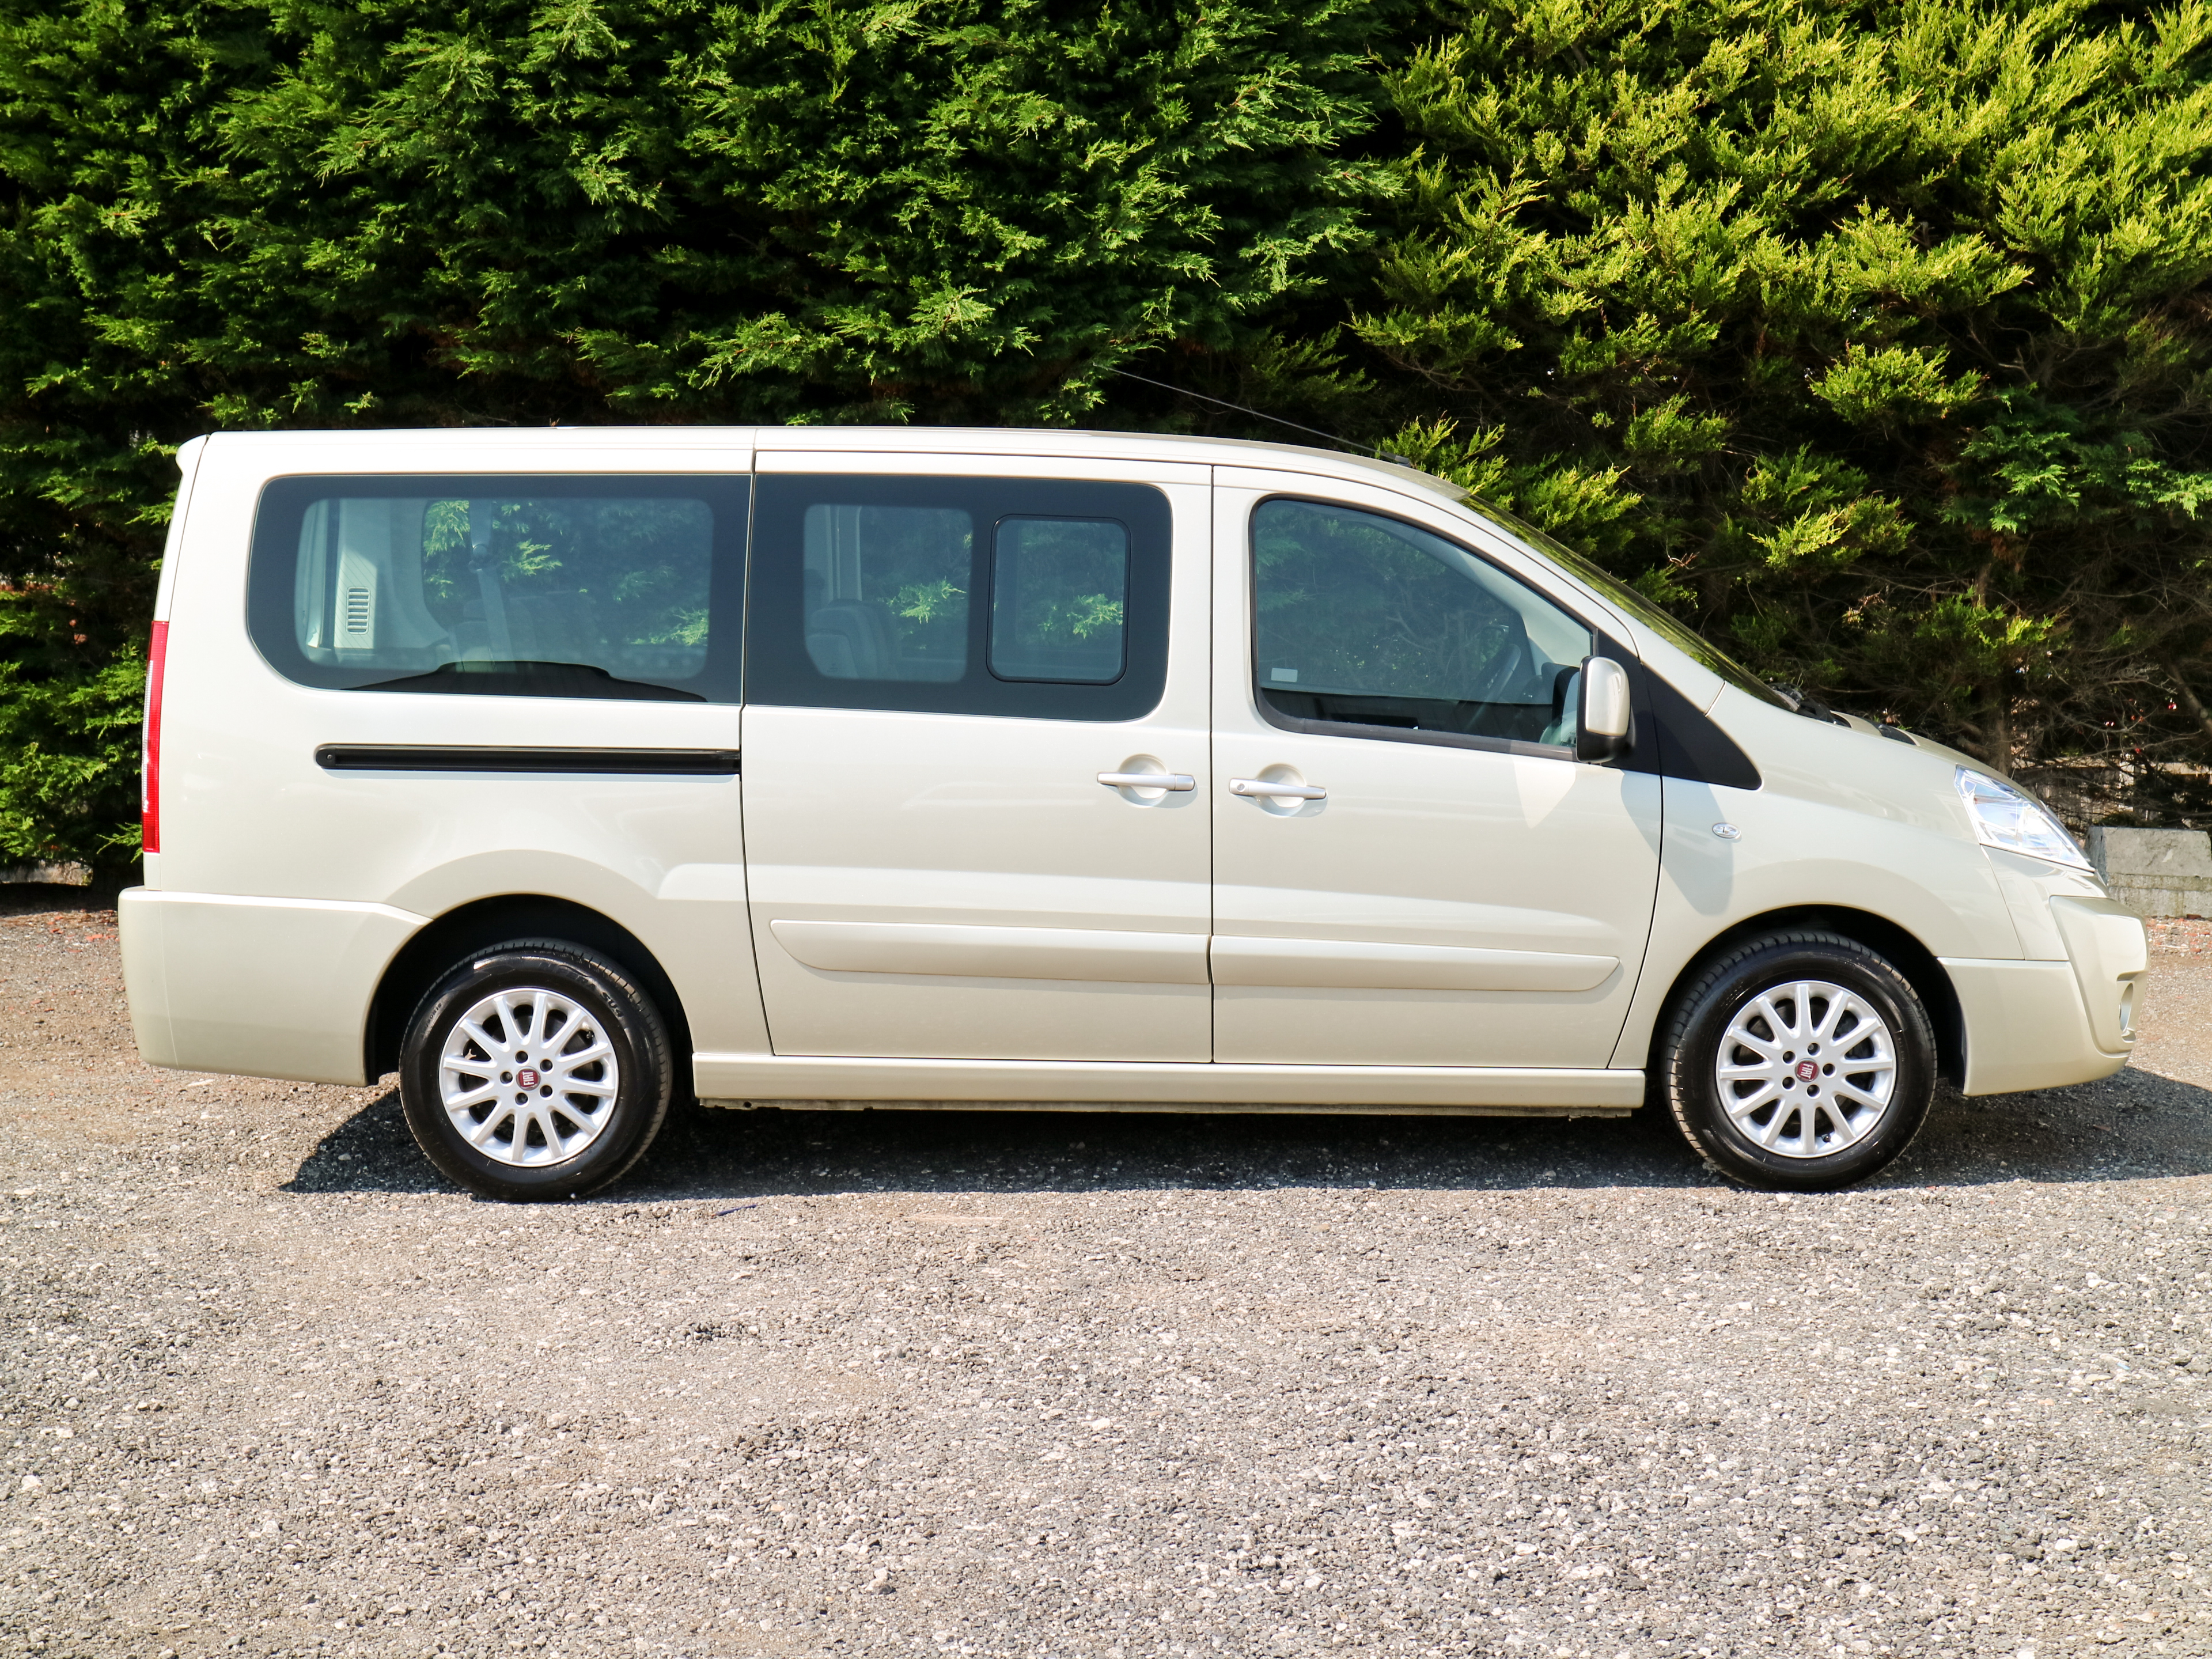 used fiat scudo panorama 130bhp eu 5 6 speed l2 lwb 8 seat minibus combi hi spec 2013. Black Bedroom Furniture Sets. Home Design Ideas